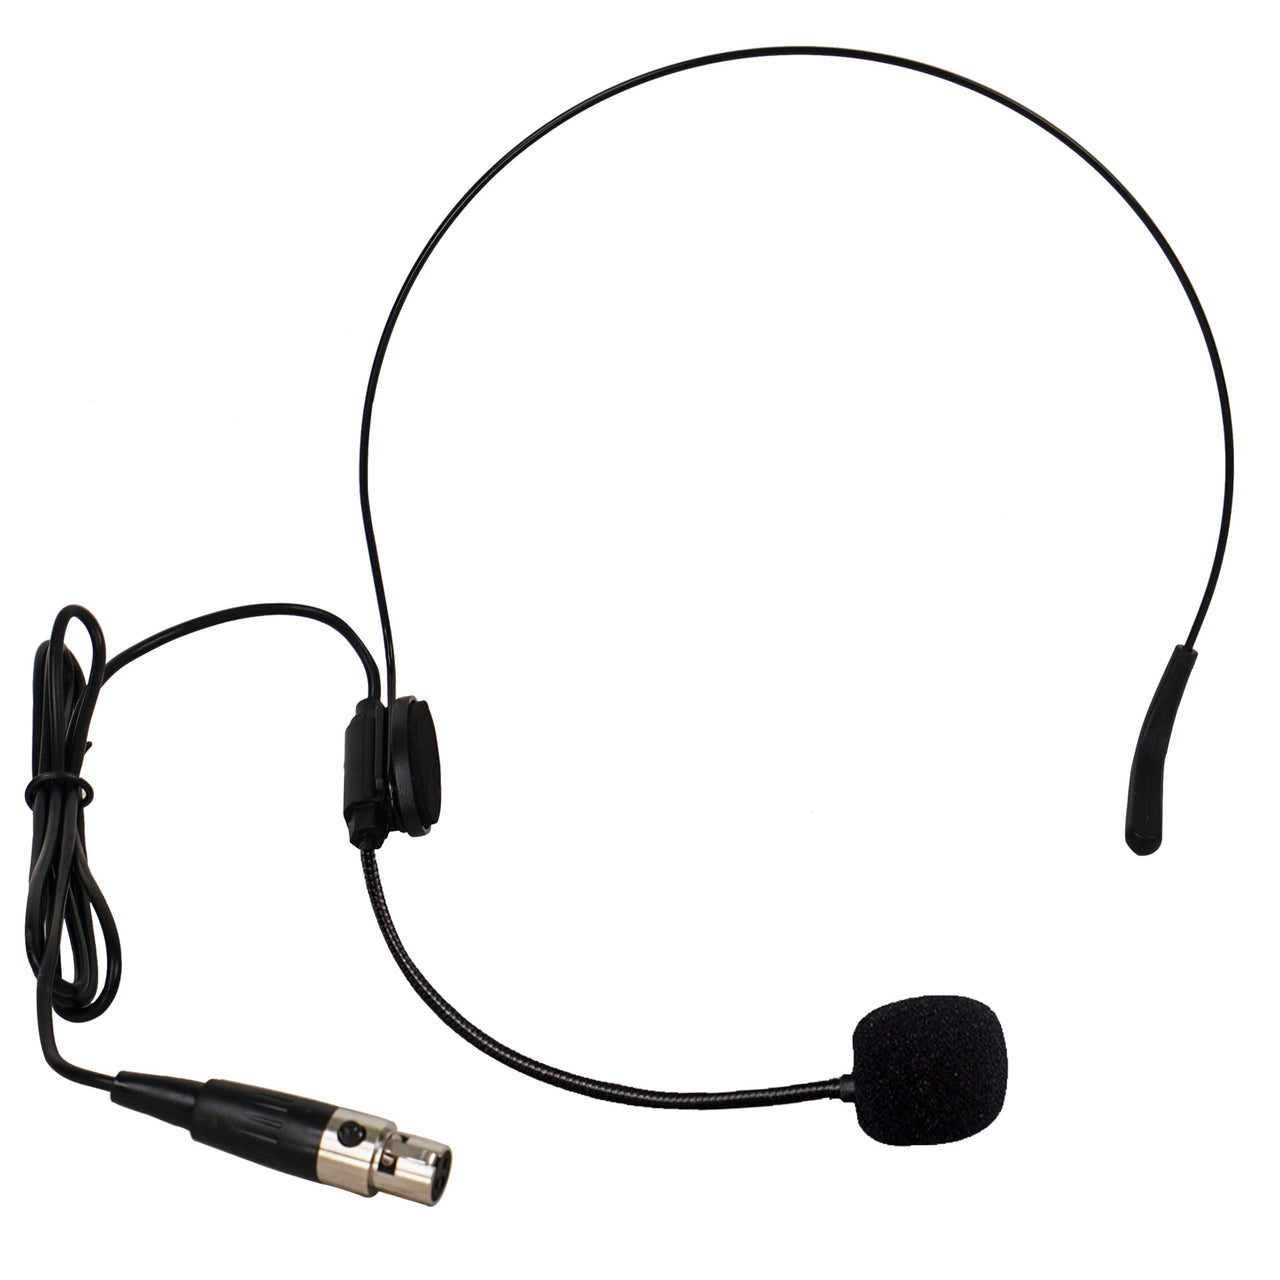 Headset Microphone for SWM20-U2 & NESO Series Wireless Microphone Systems (SWM20-HS)